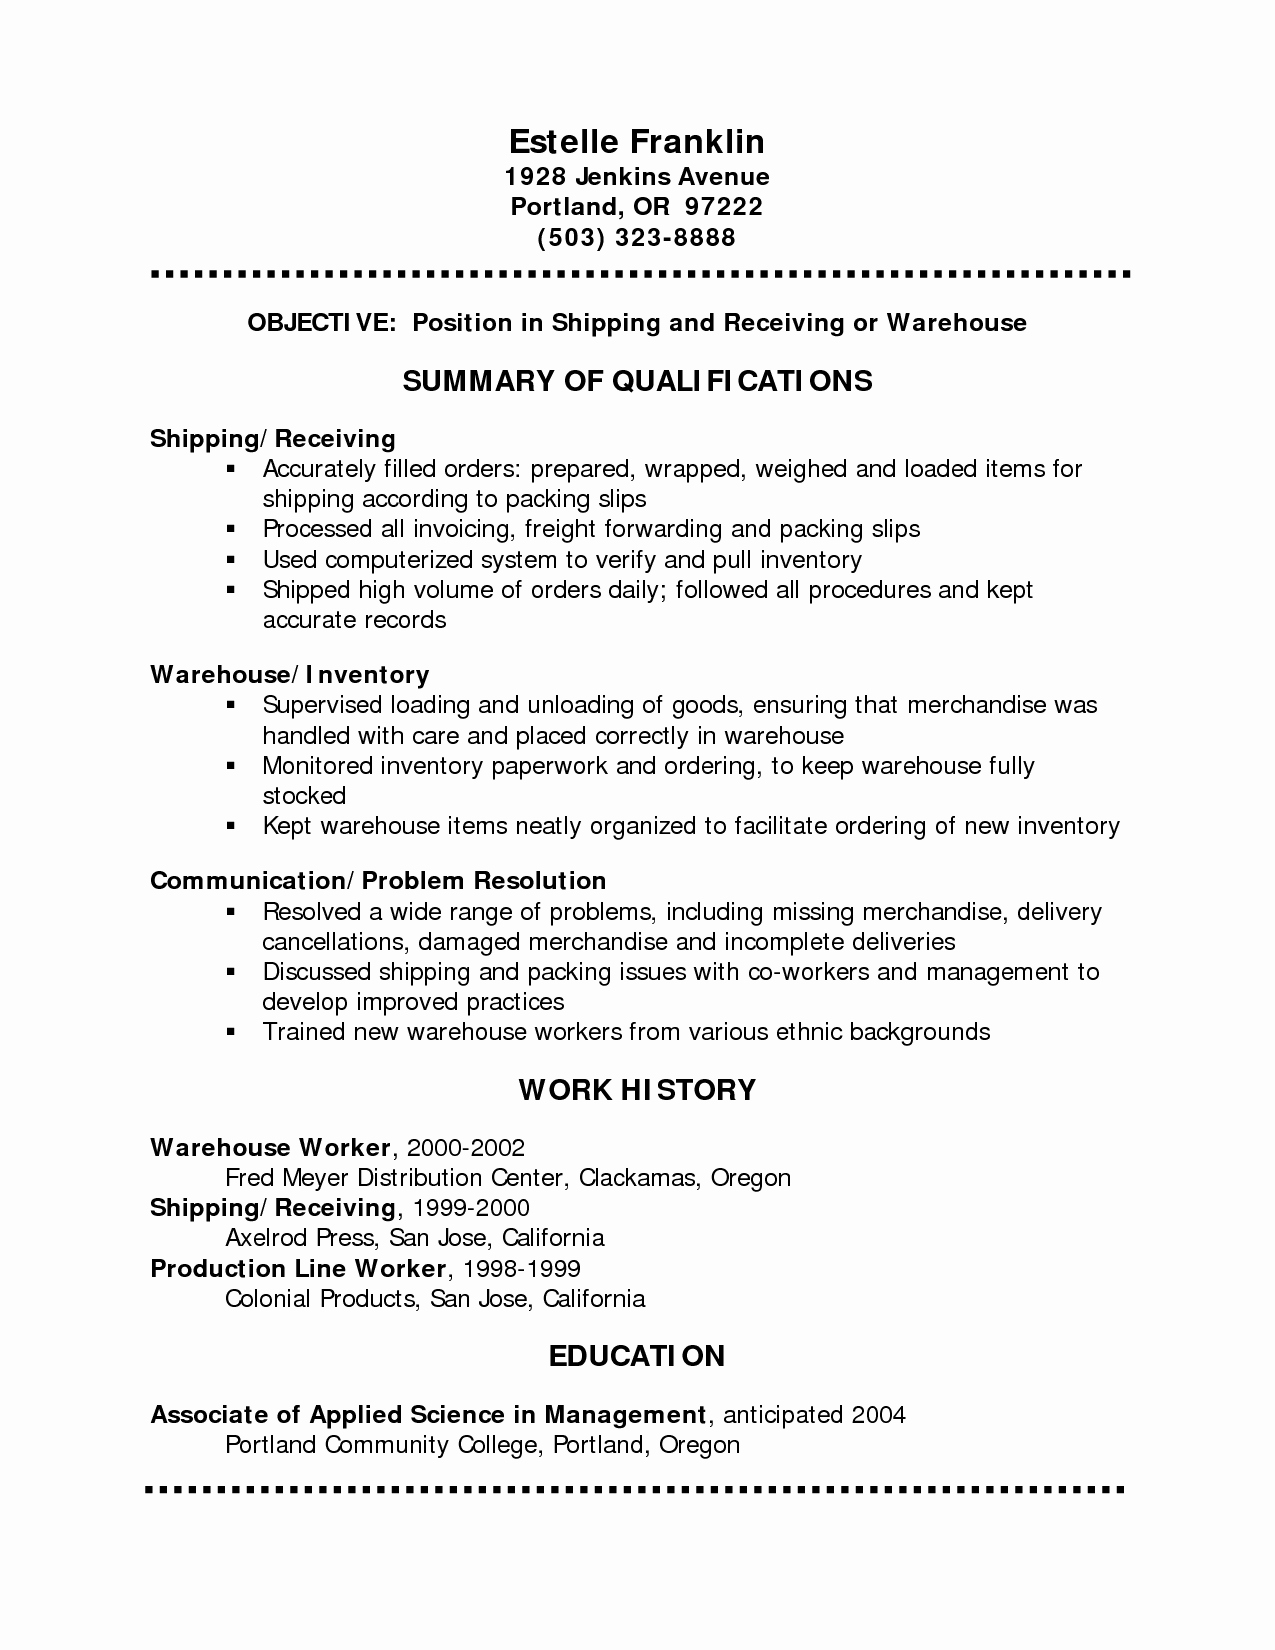 Professional Resume format Free Download Inspirational Professional Resume format Samples Free Download